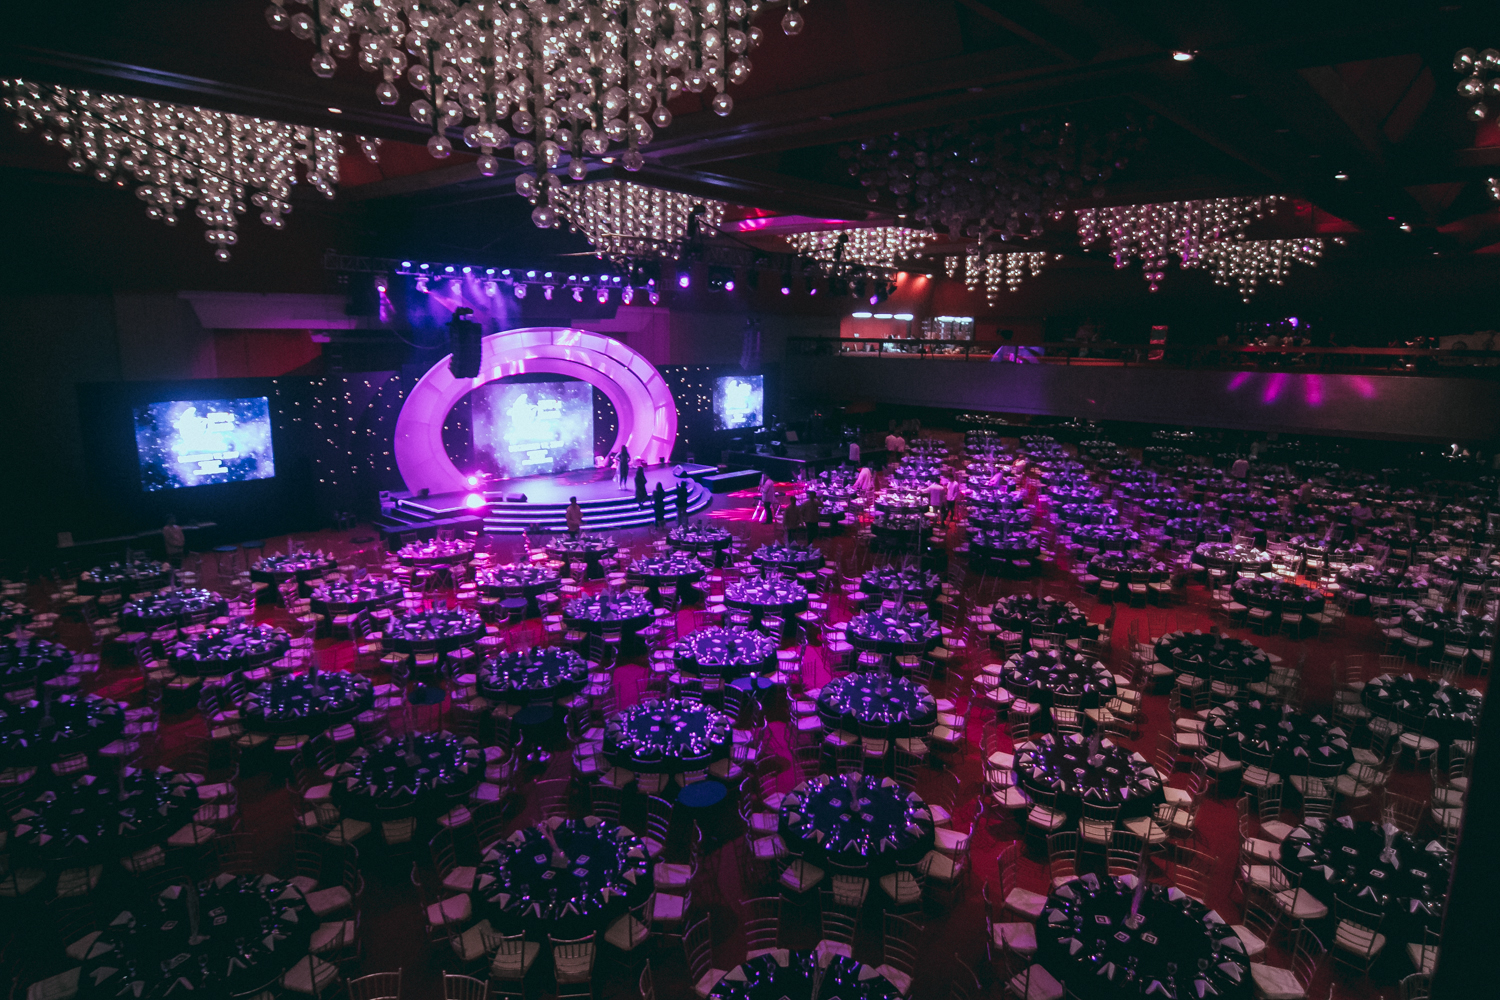 [24/7] DREAM 2017 YEAR-END PARTY